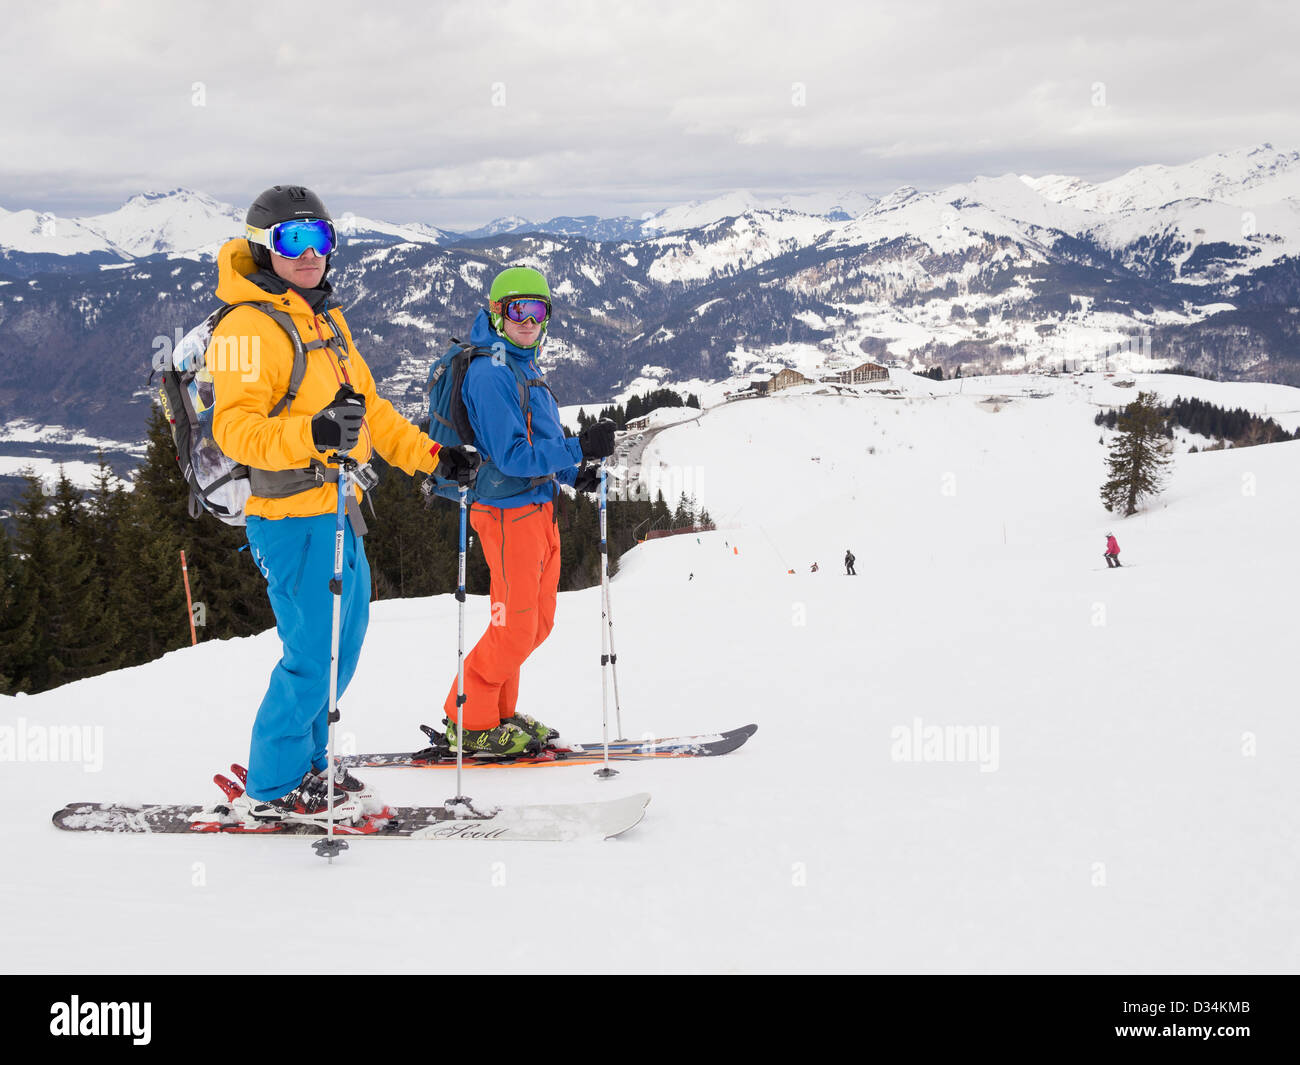 Two male skiers skiing in flat light on red run Marmotte in Le Grand Massif ski area of French Alps above Samoëns - Stock Image